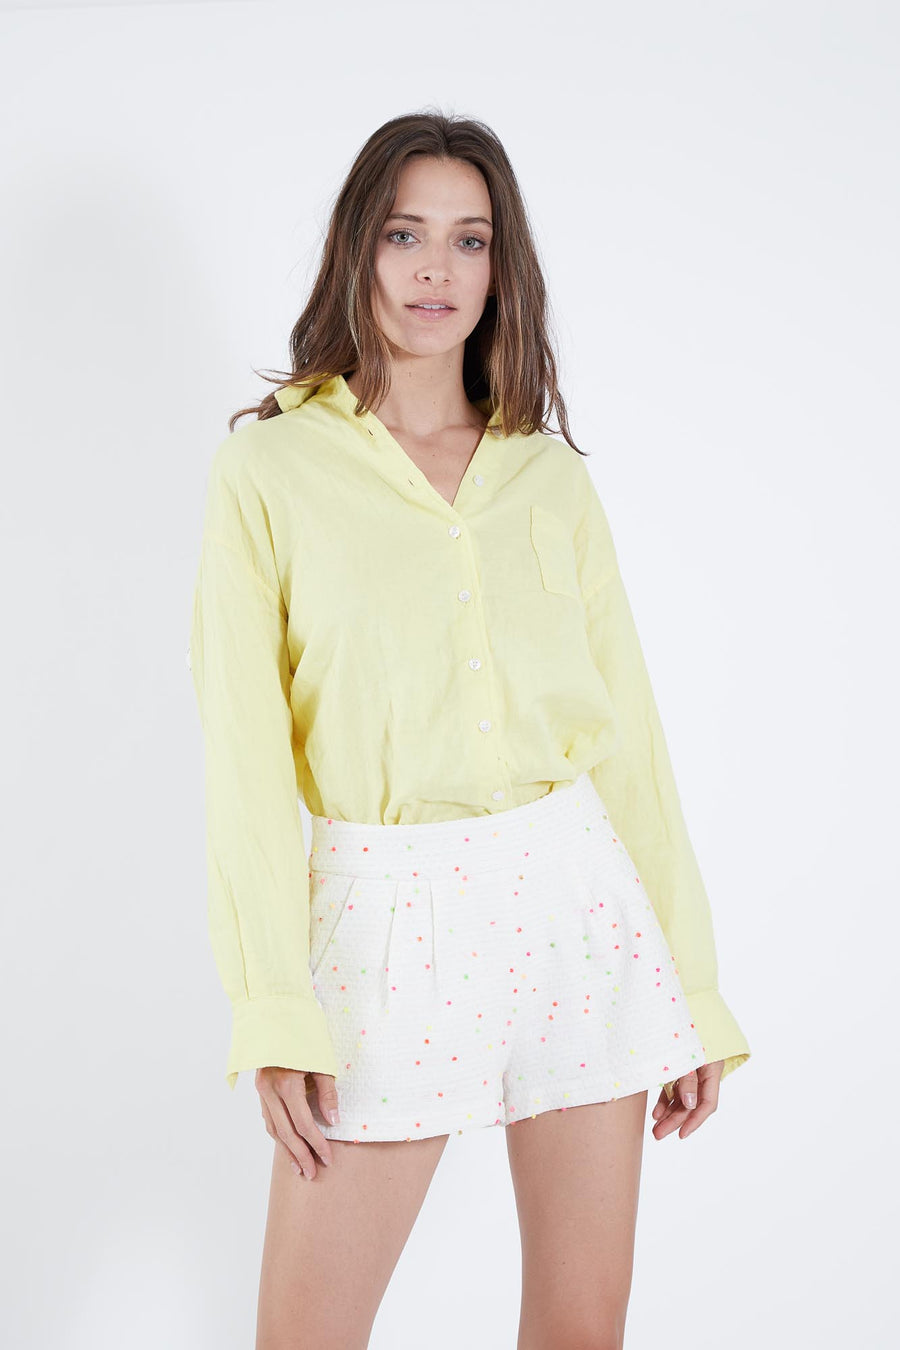 BRET TOP YELLOW COTTON  *LIMITED*EDITION*